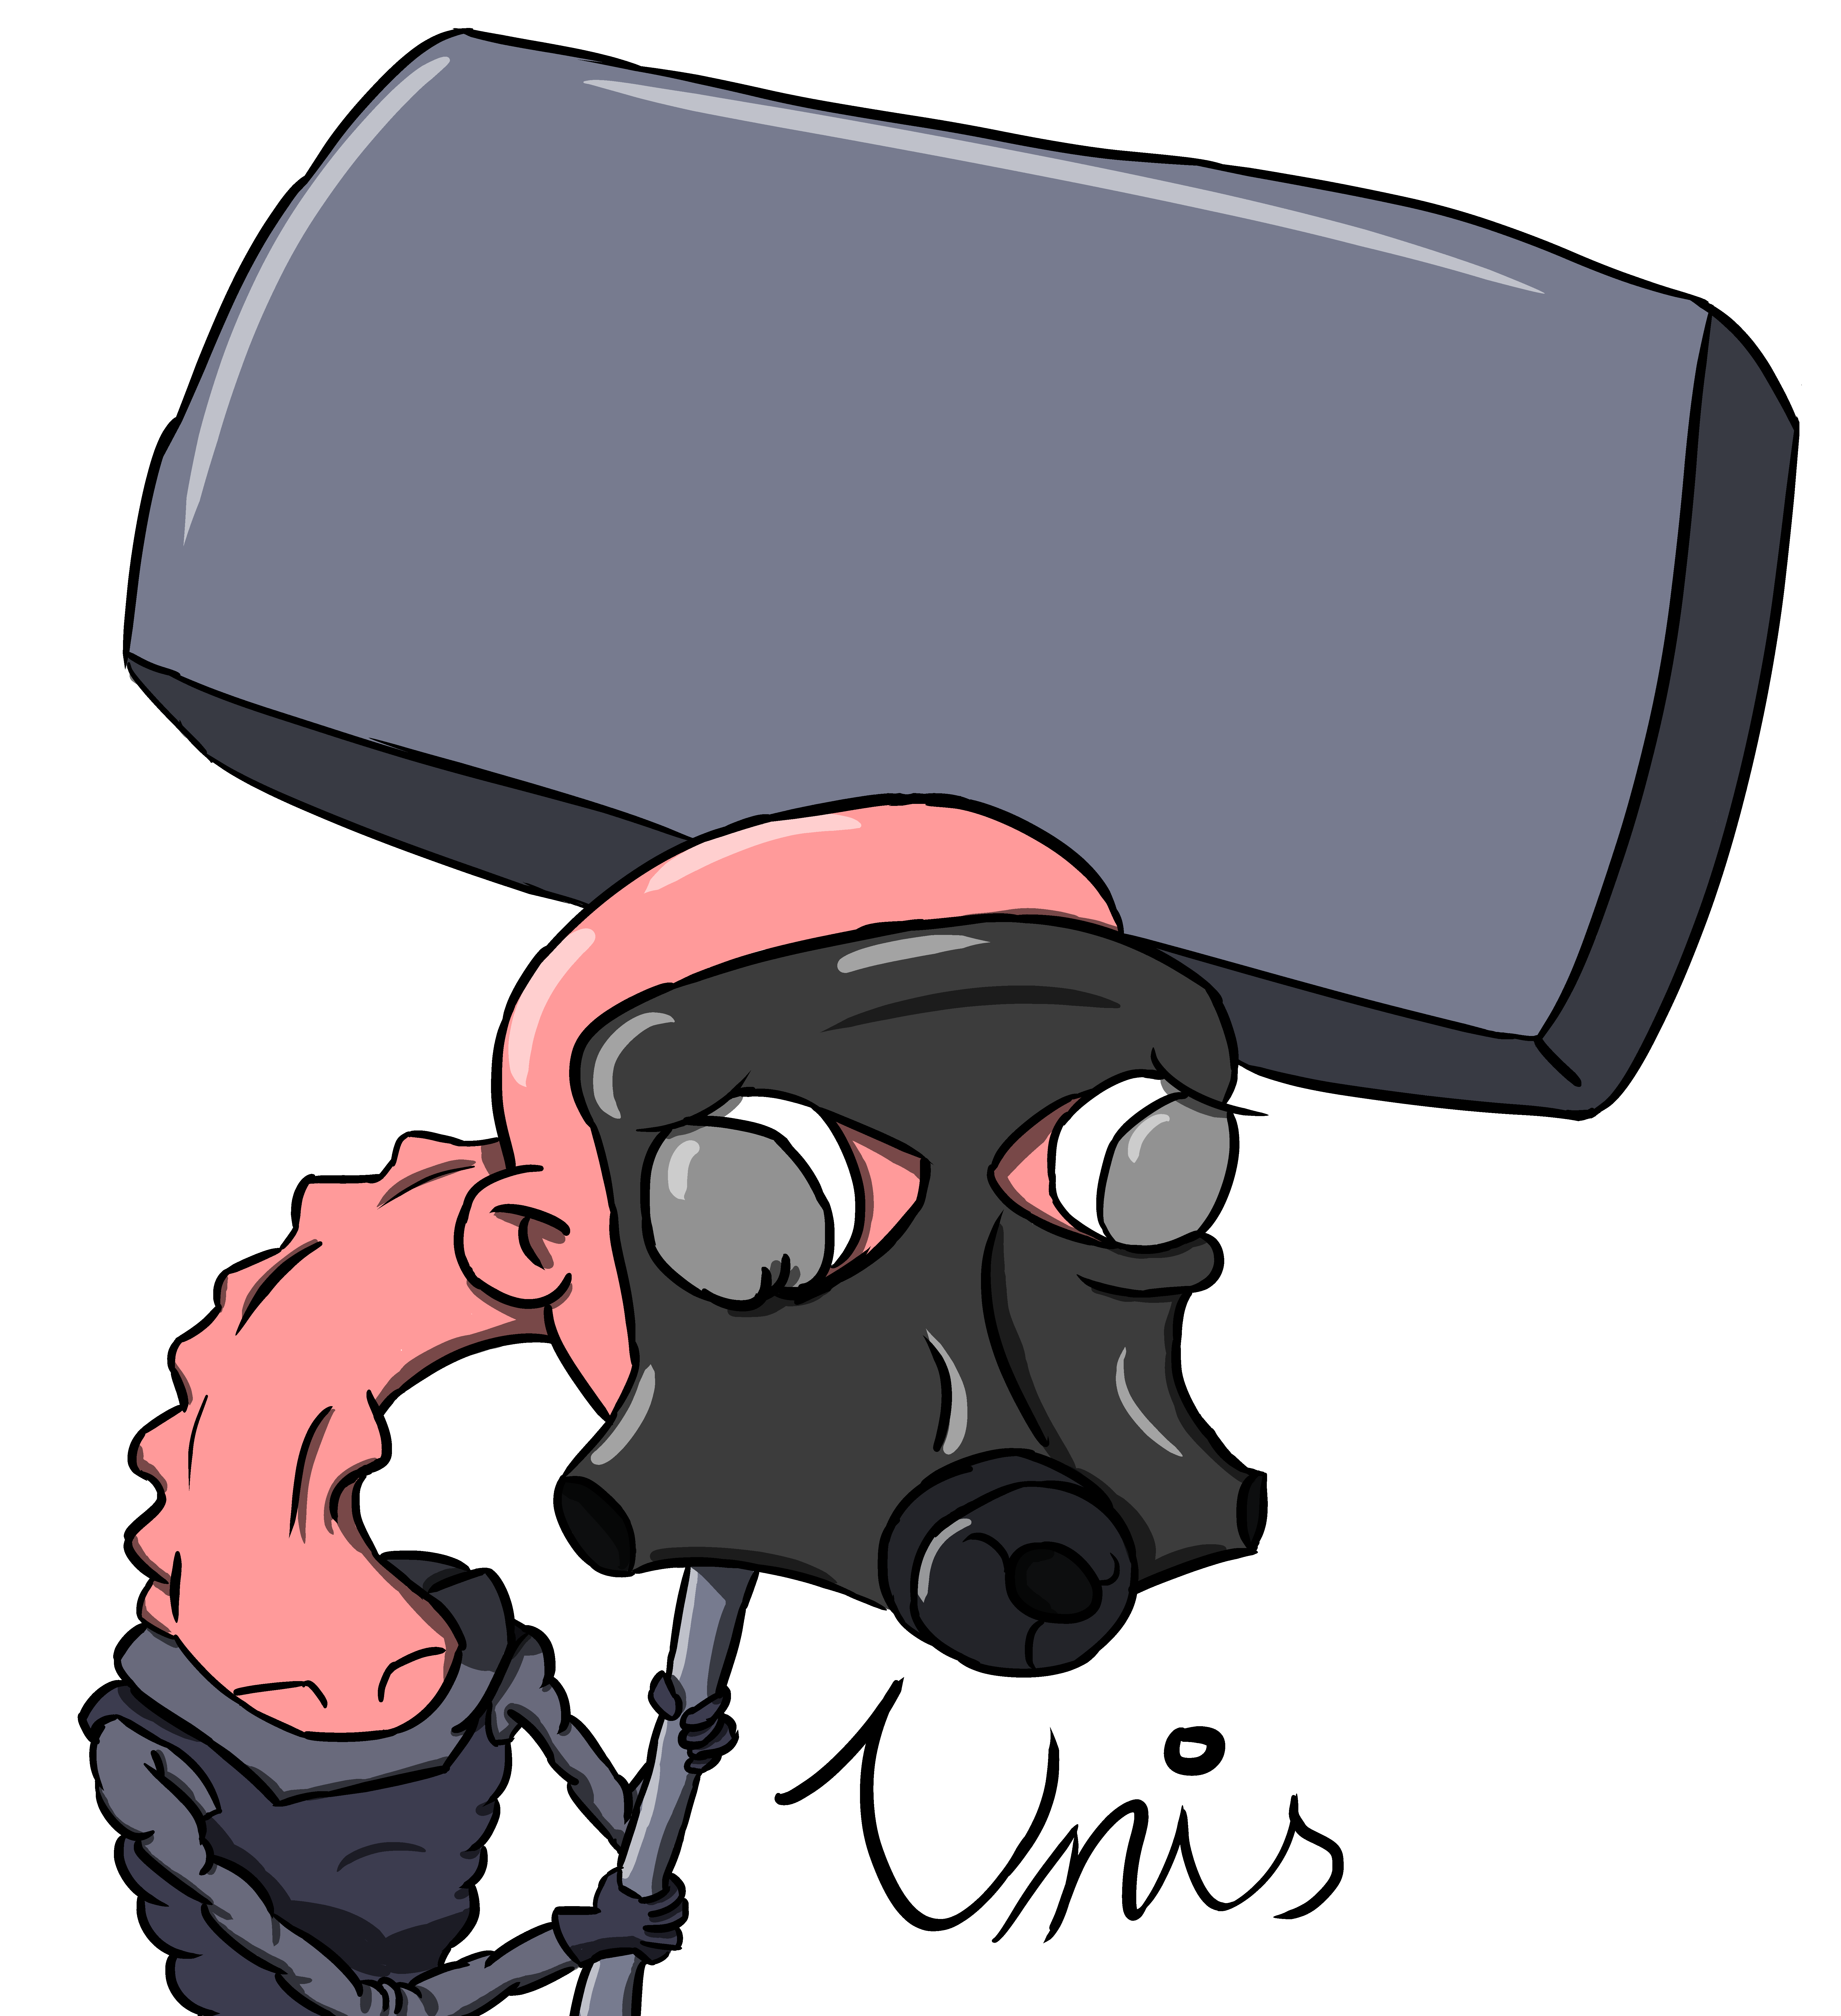 Sledge Drawing at GetDrawings com | Free for personal use